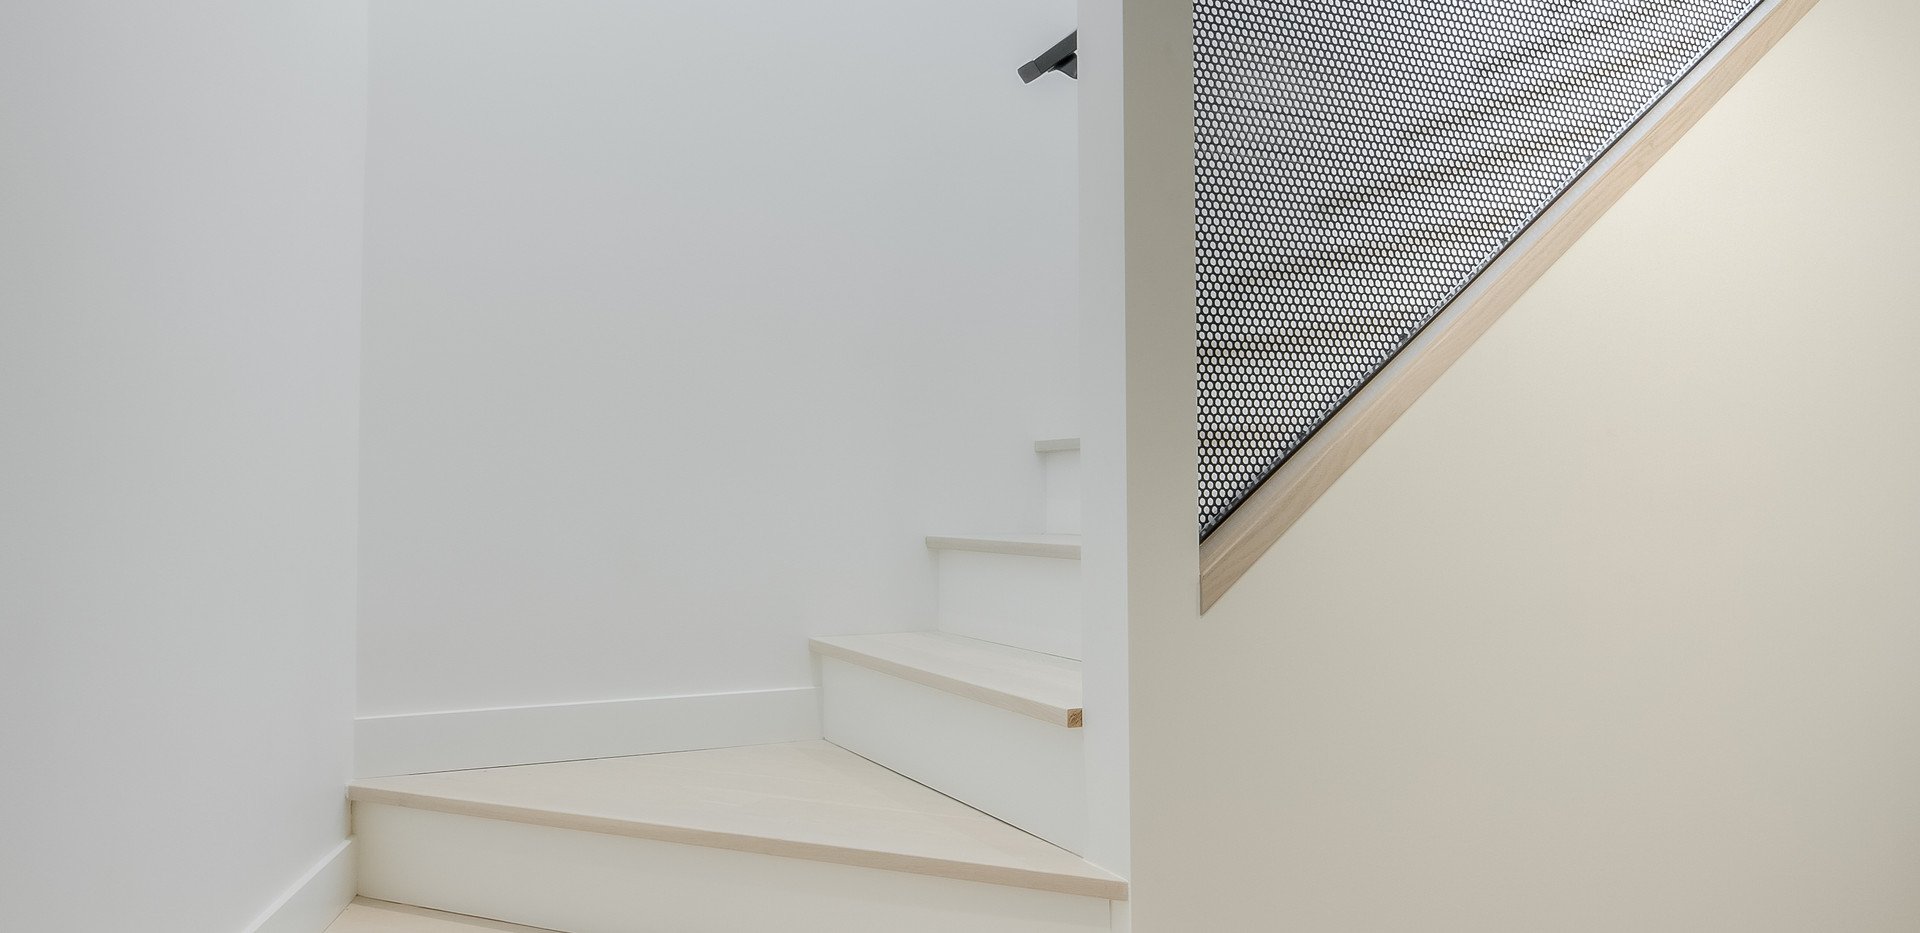 New Stairwell After 1